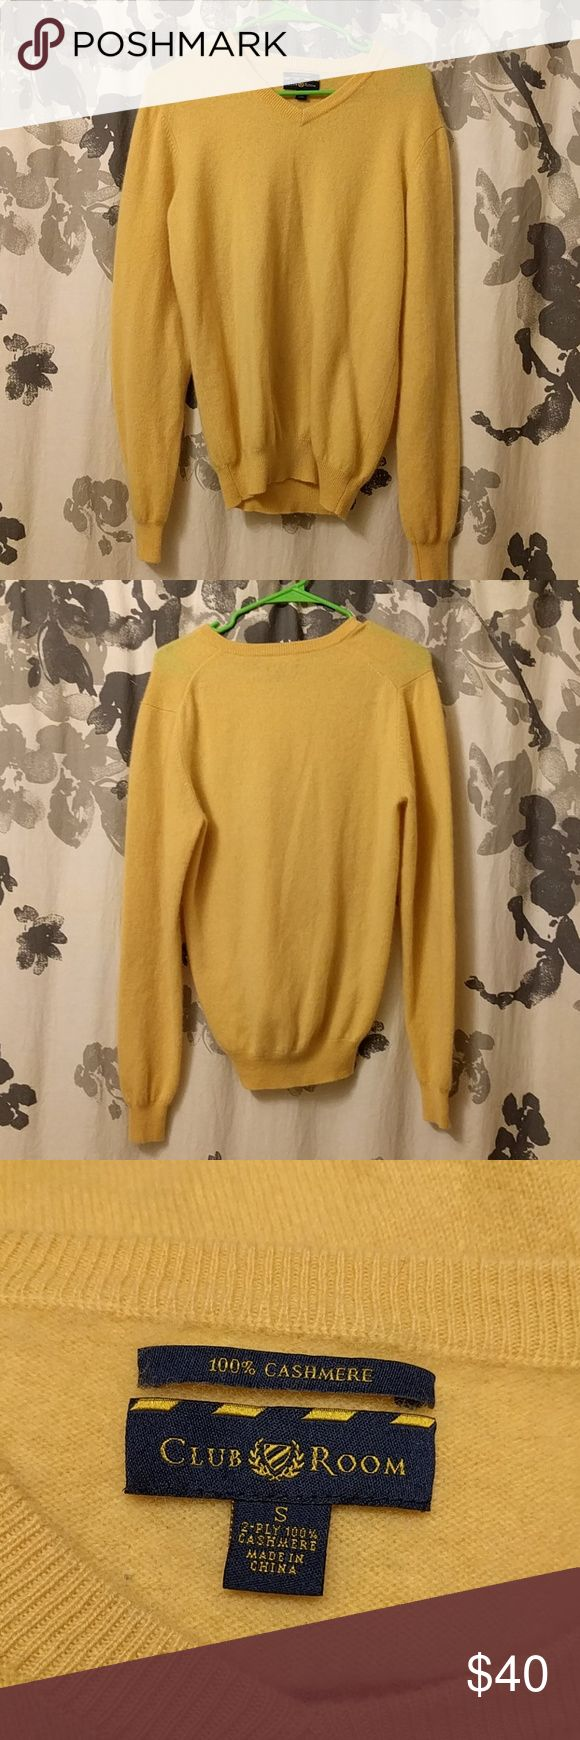 Men's cashmere sweater Yellow-100% cashmere sweater. Good condition, the forth picture shows the texture best. Open to offers. Club Room Sweaters Turtleneck